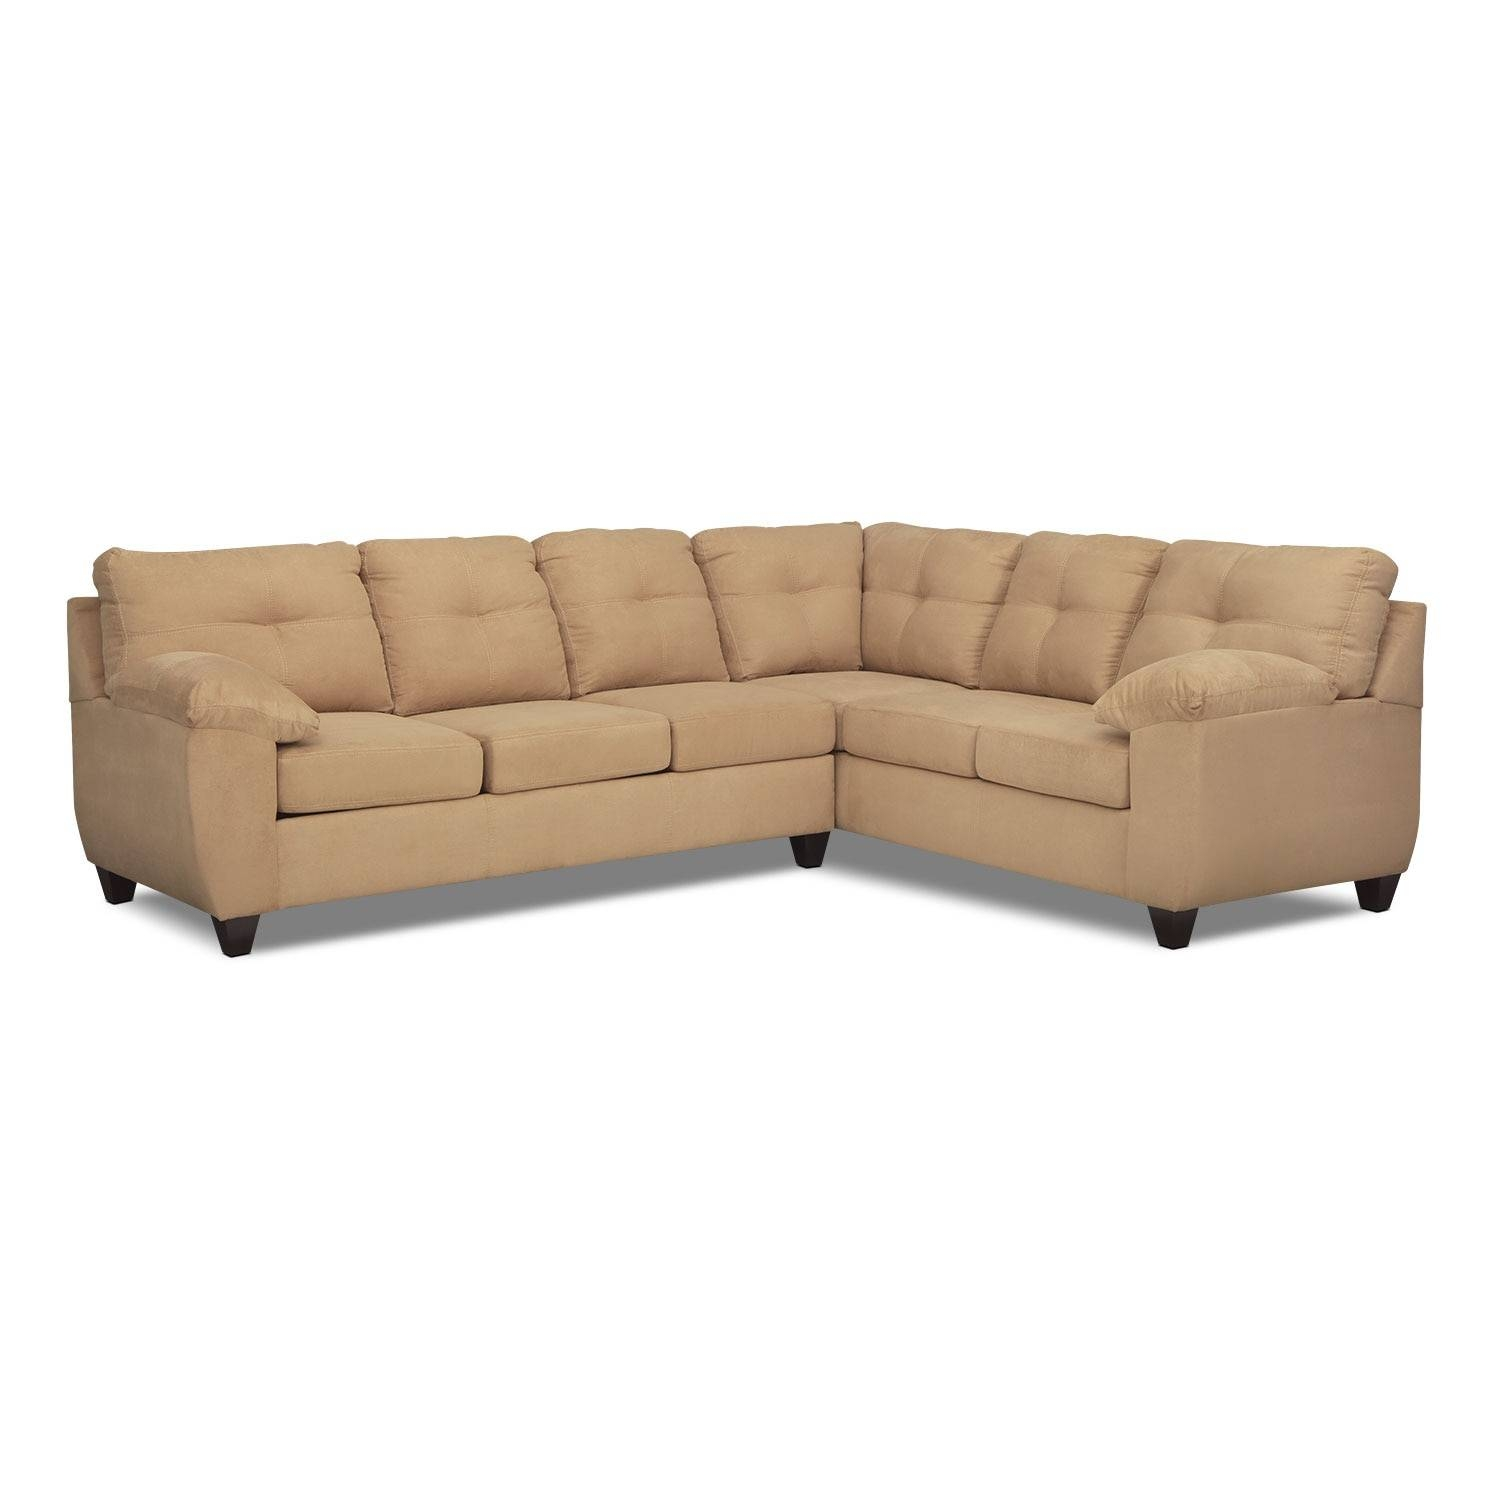 Sleeper Sofas | Value City Furniture | Value City Furniture with Sofas With Beds (Image 16 of 30)